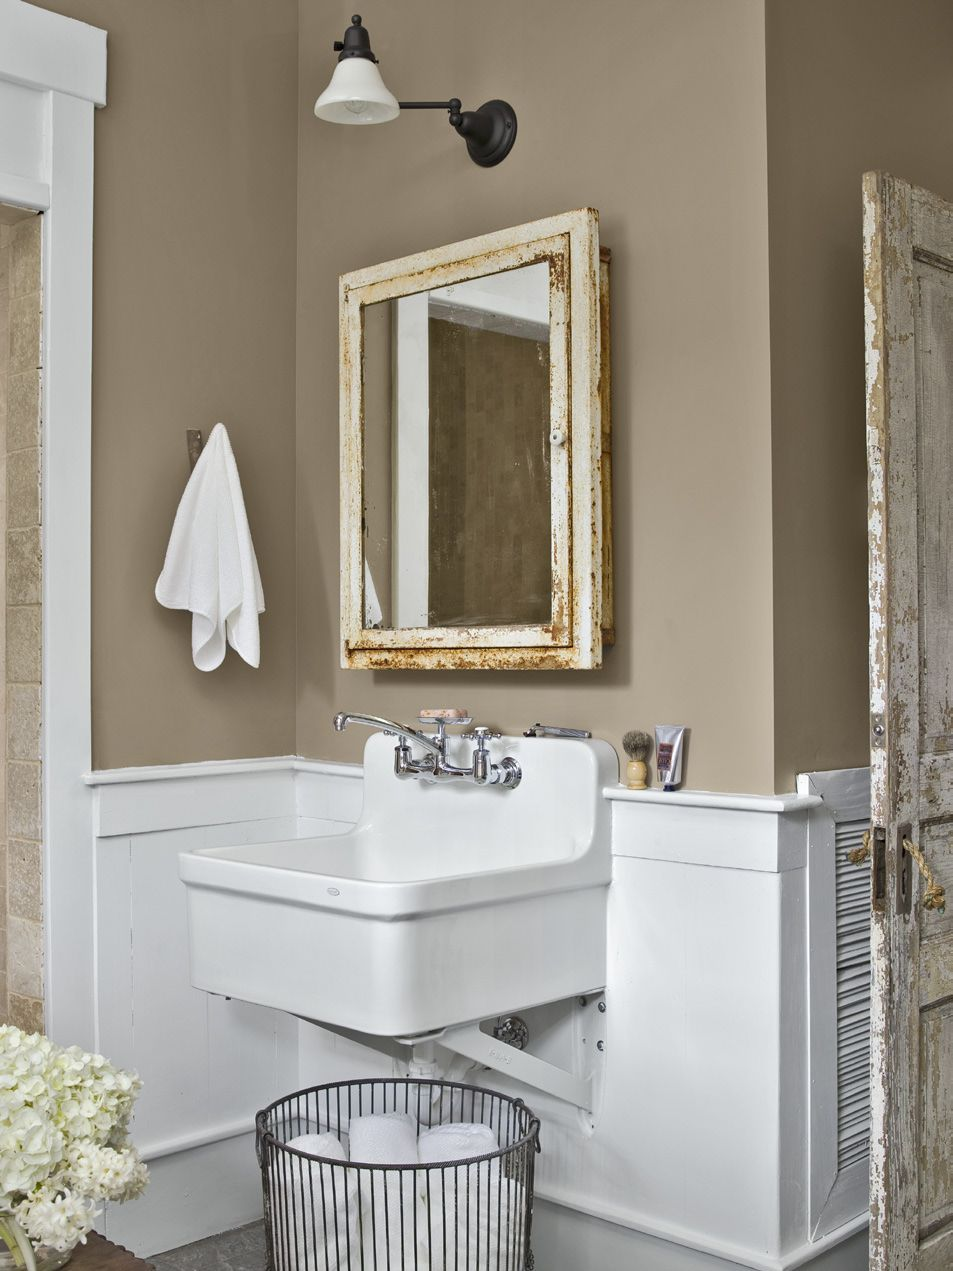 Bathroom Color Ideas 2020 Image Of Bathroom And Closet